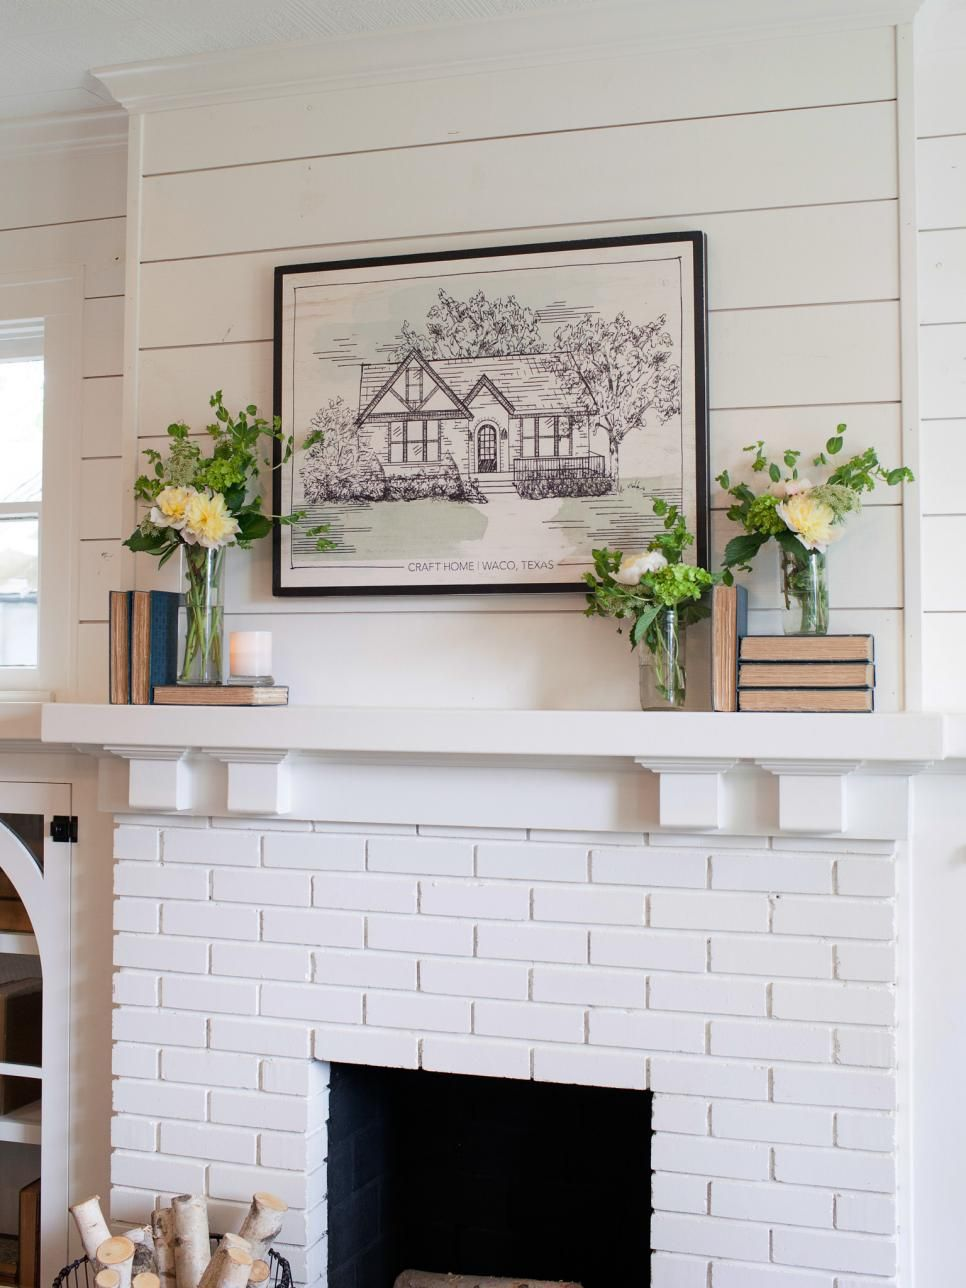 The Brick Fireplace Wood Mantel And Shiplap Are Painted In Bright White Which Offers A Striking Balance With Dark Stained Floors Blue Gray Walls